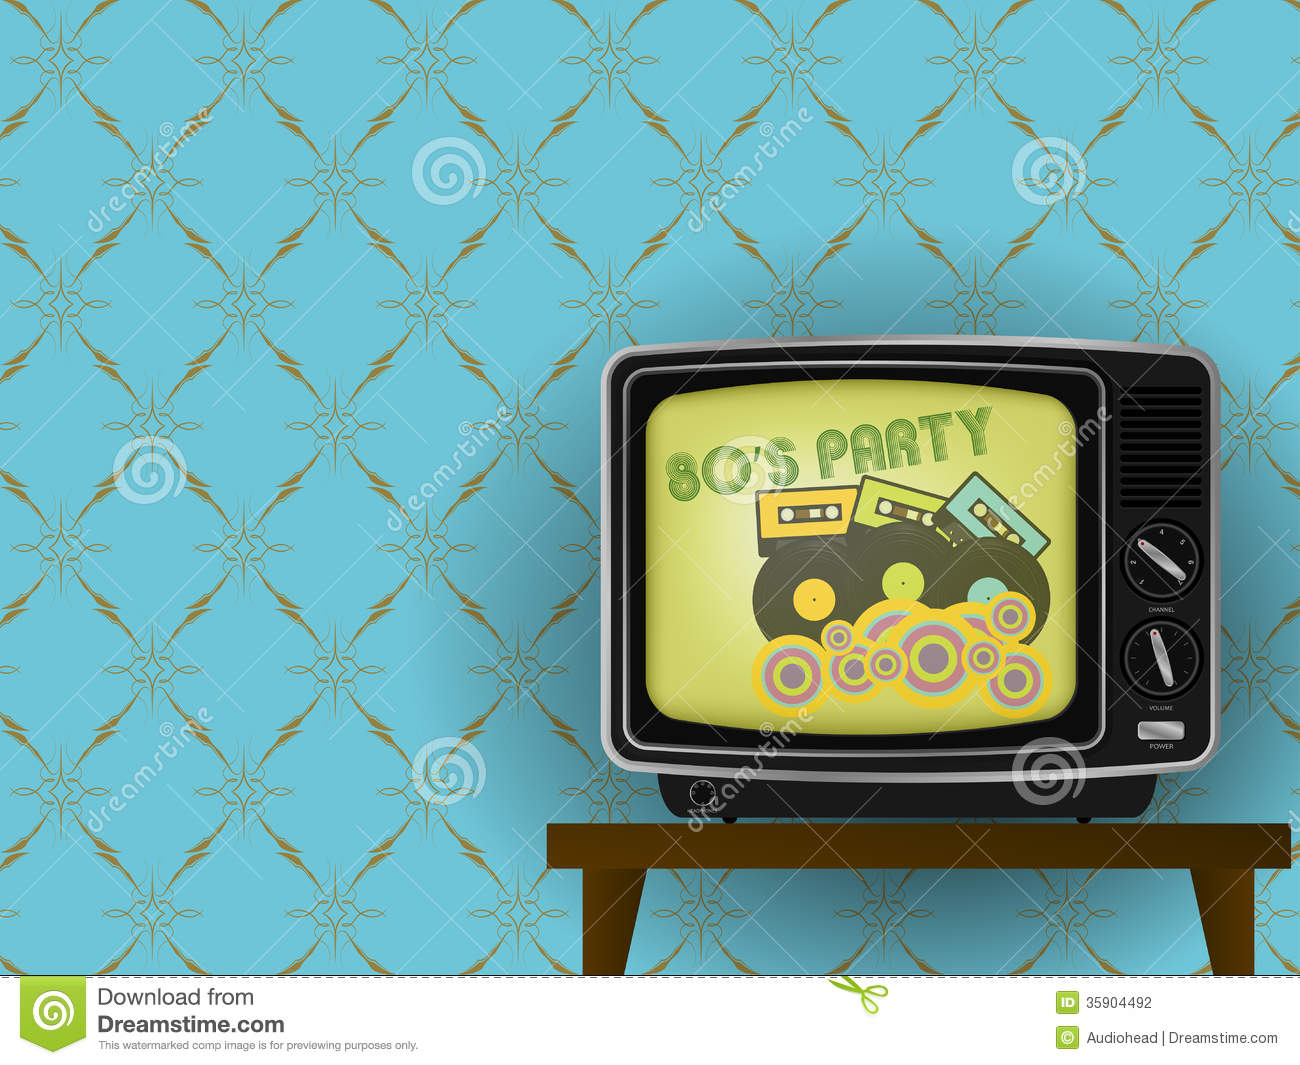 of Retro TV - 80s Party on TV - With Luxury Vintage Wallpaper ...